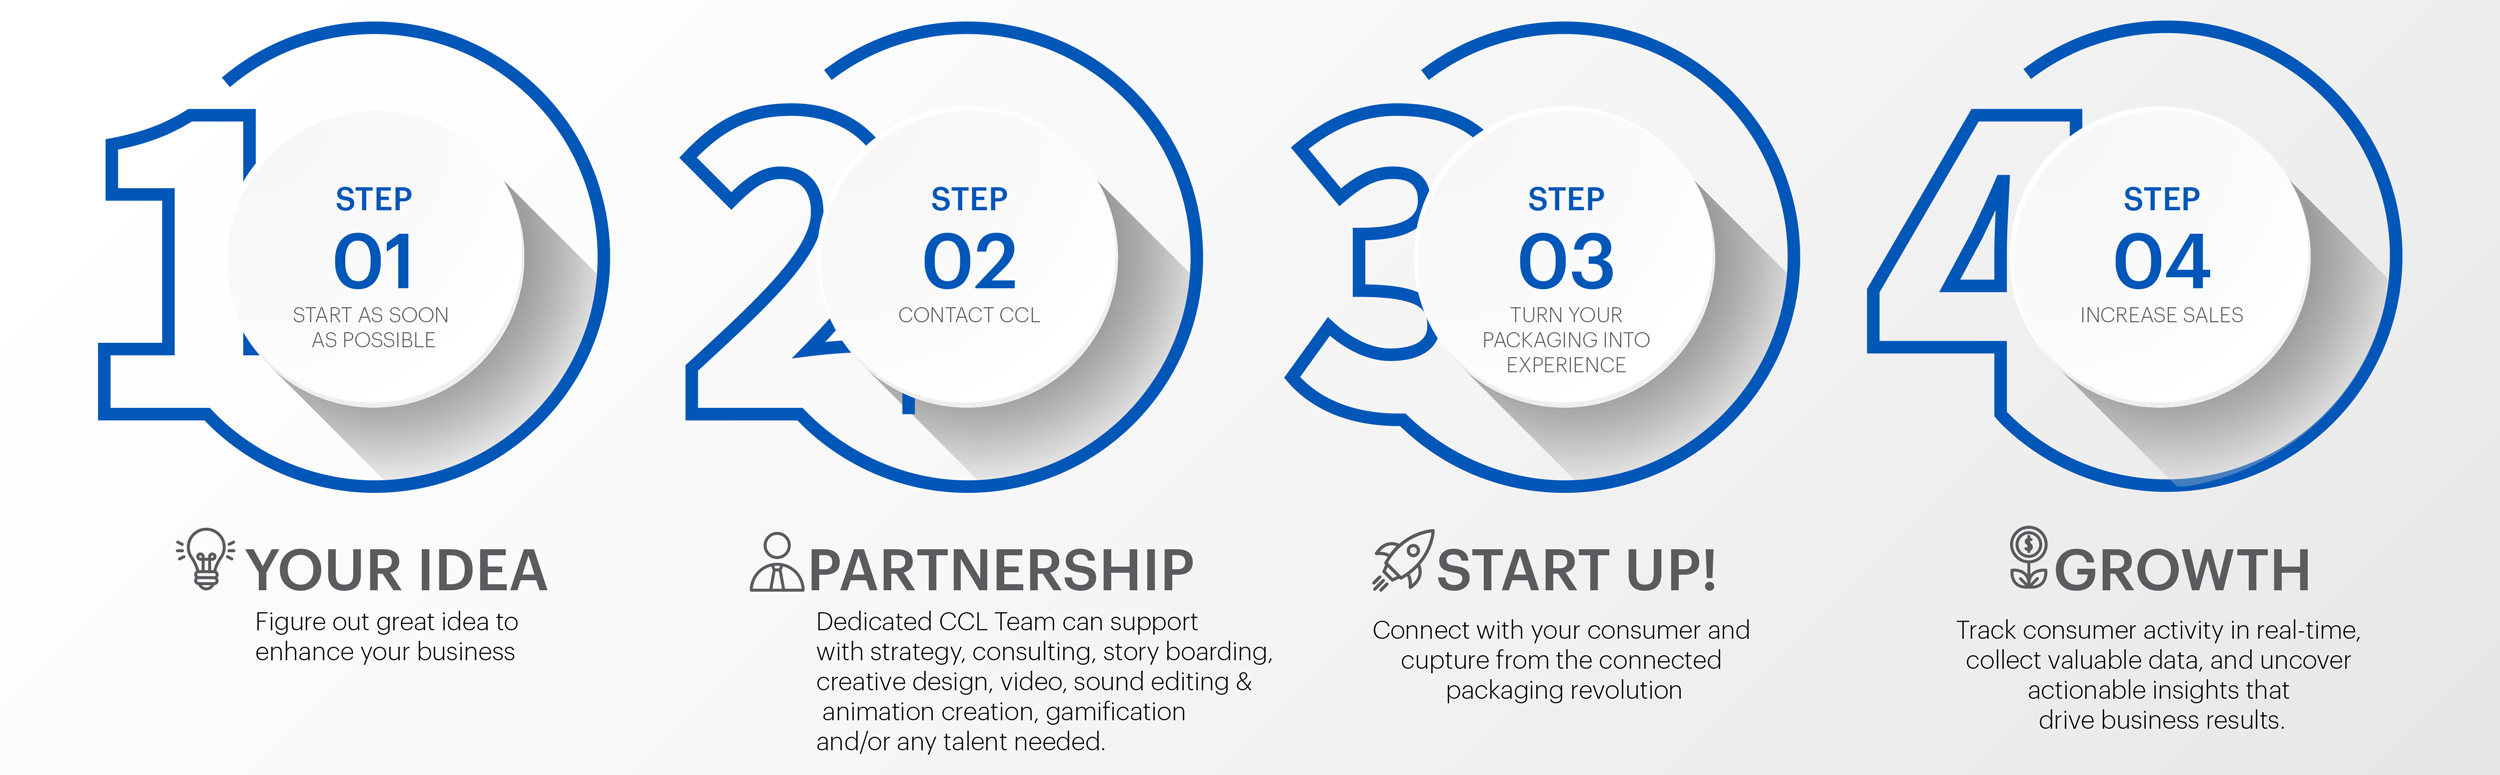 Connected Packaging Project Steps